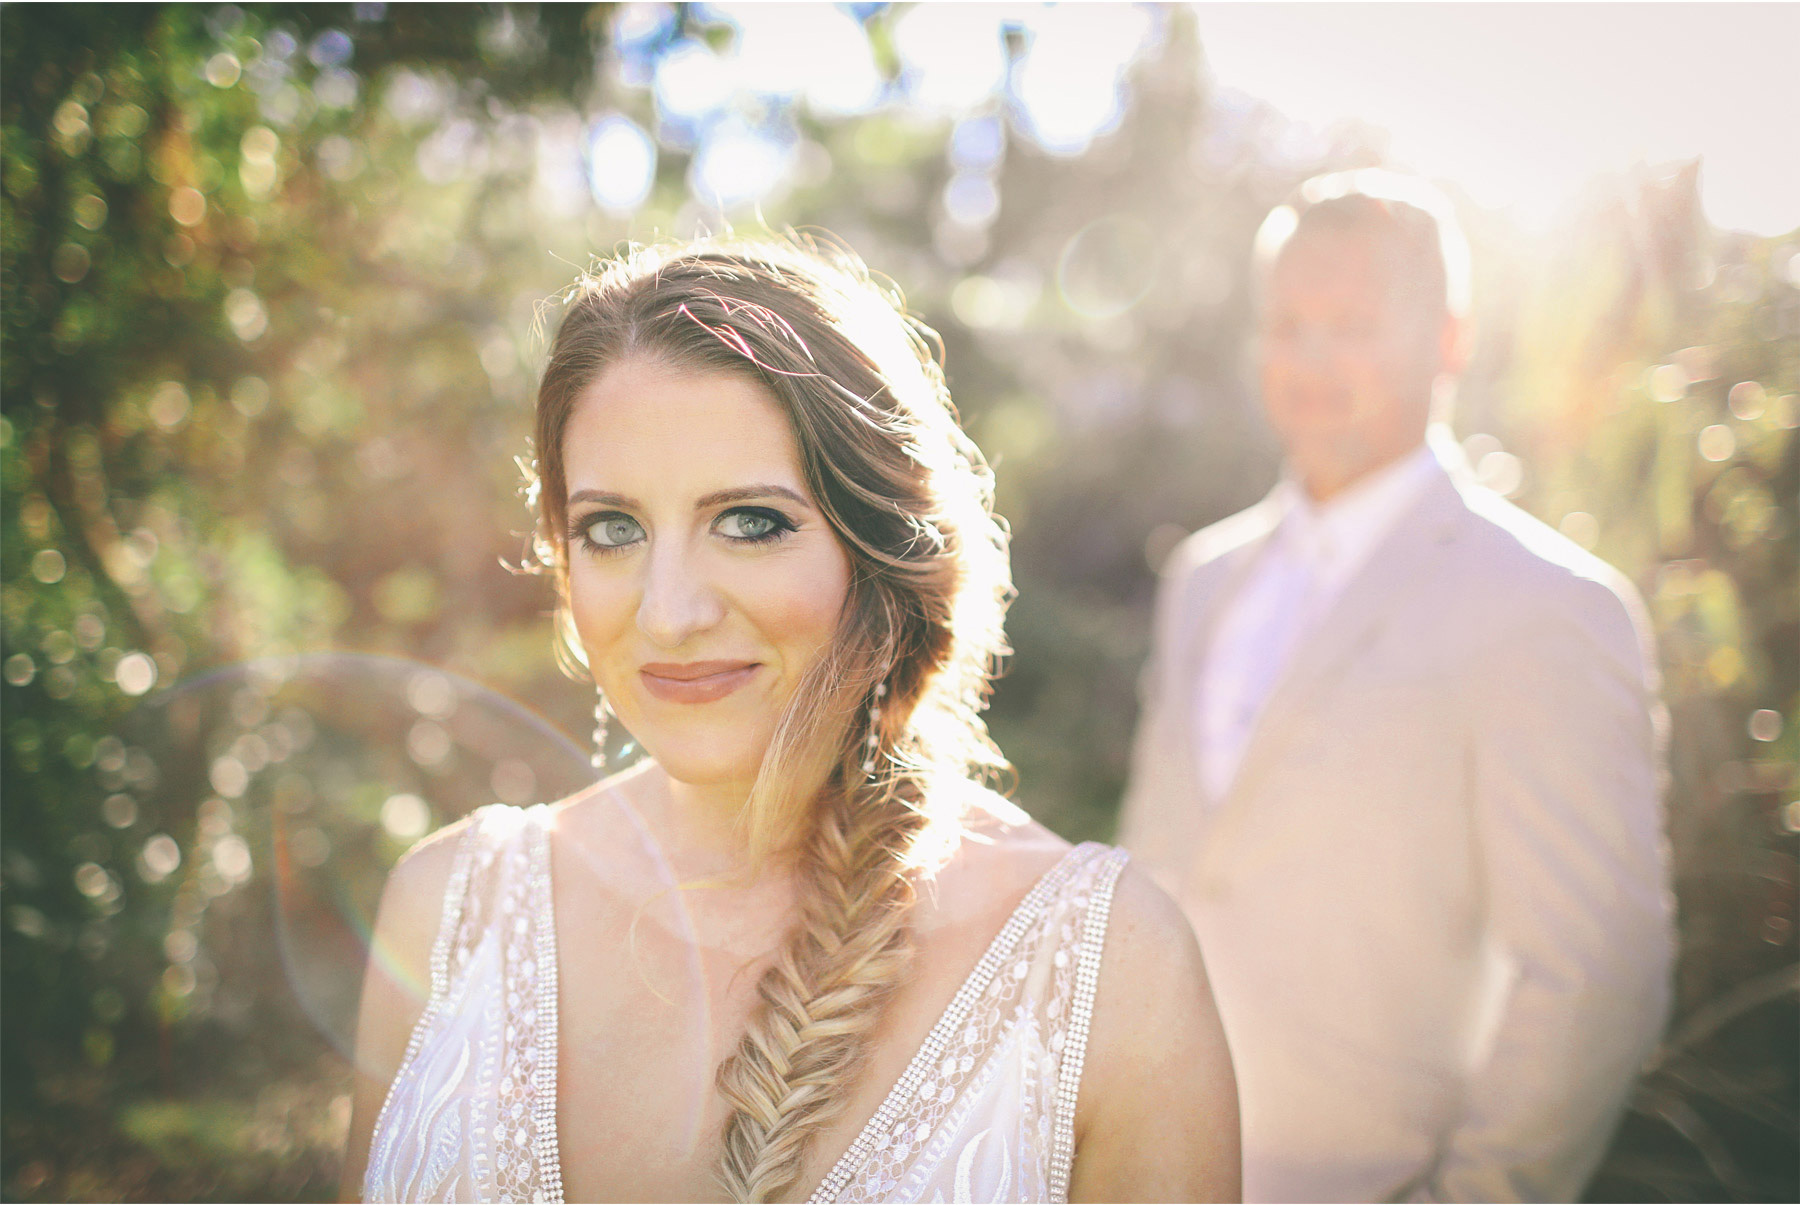 22-Key-Largo-Florida-Keys-Wedding-Photographer-by-Andrew-Vick-Photography-Playa-Largo-Resort-and-Spa-Hotel-Destination-Winter-Wear-It-Again-Bride-Groom-Sunflares-Vintage-Carrie-and-Brian.jpg